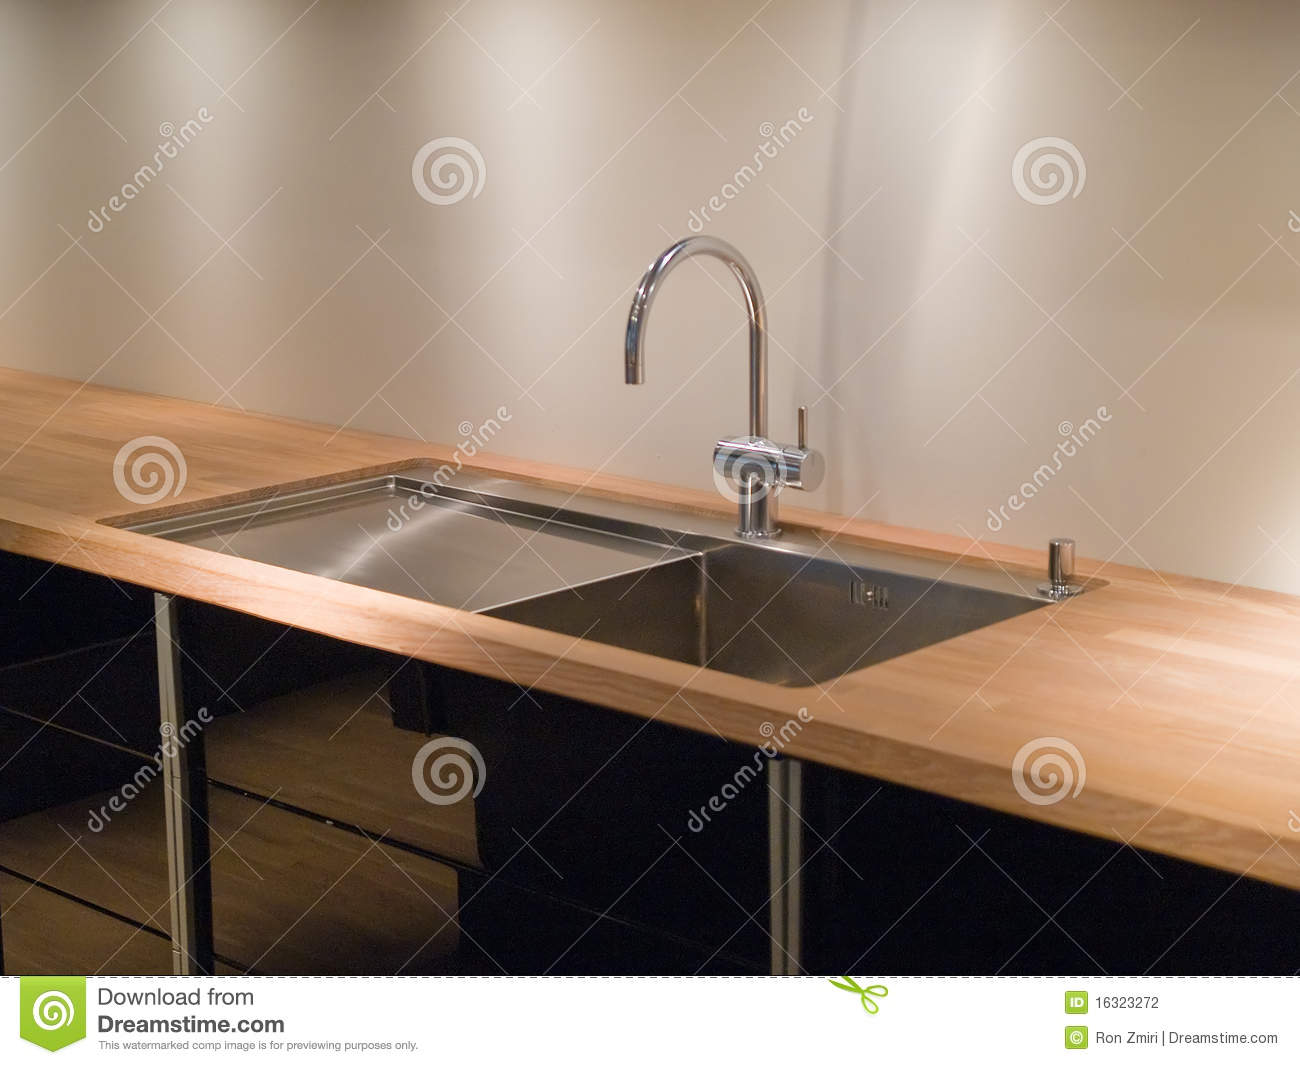 royalty free stock photos modern kitchen sink faucet image kitchen sinks and faucets Details of modern kitchen sink with tap faucet Stock Photography